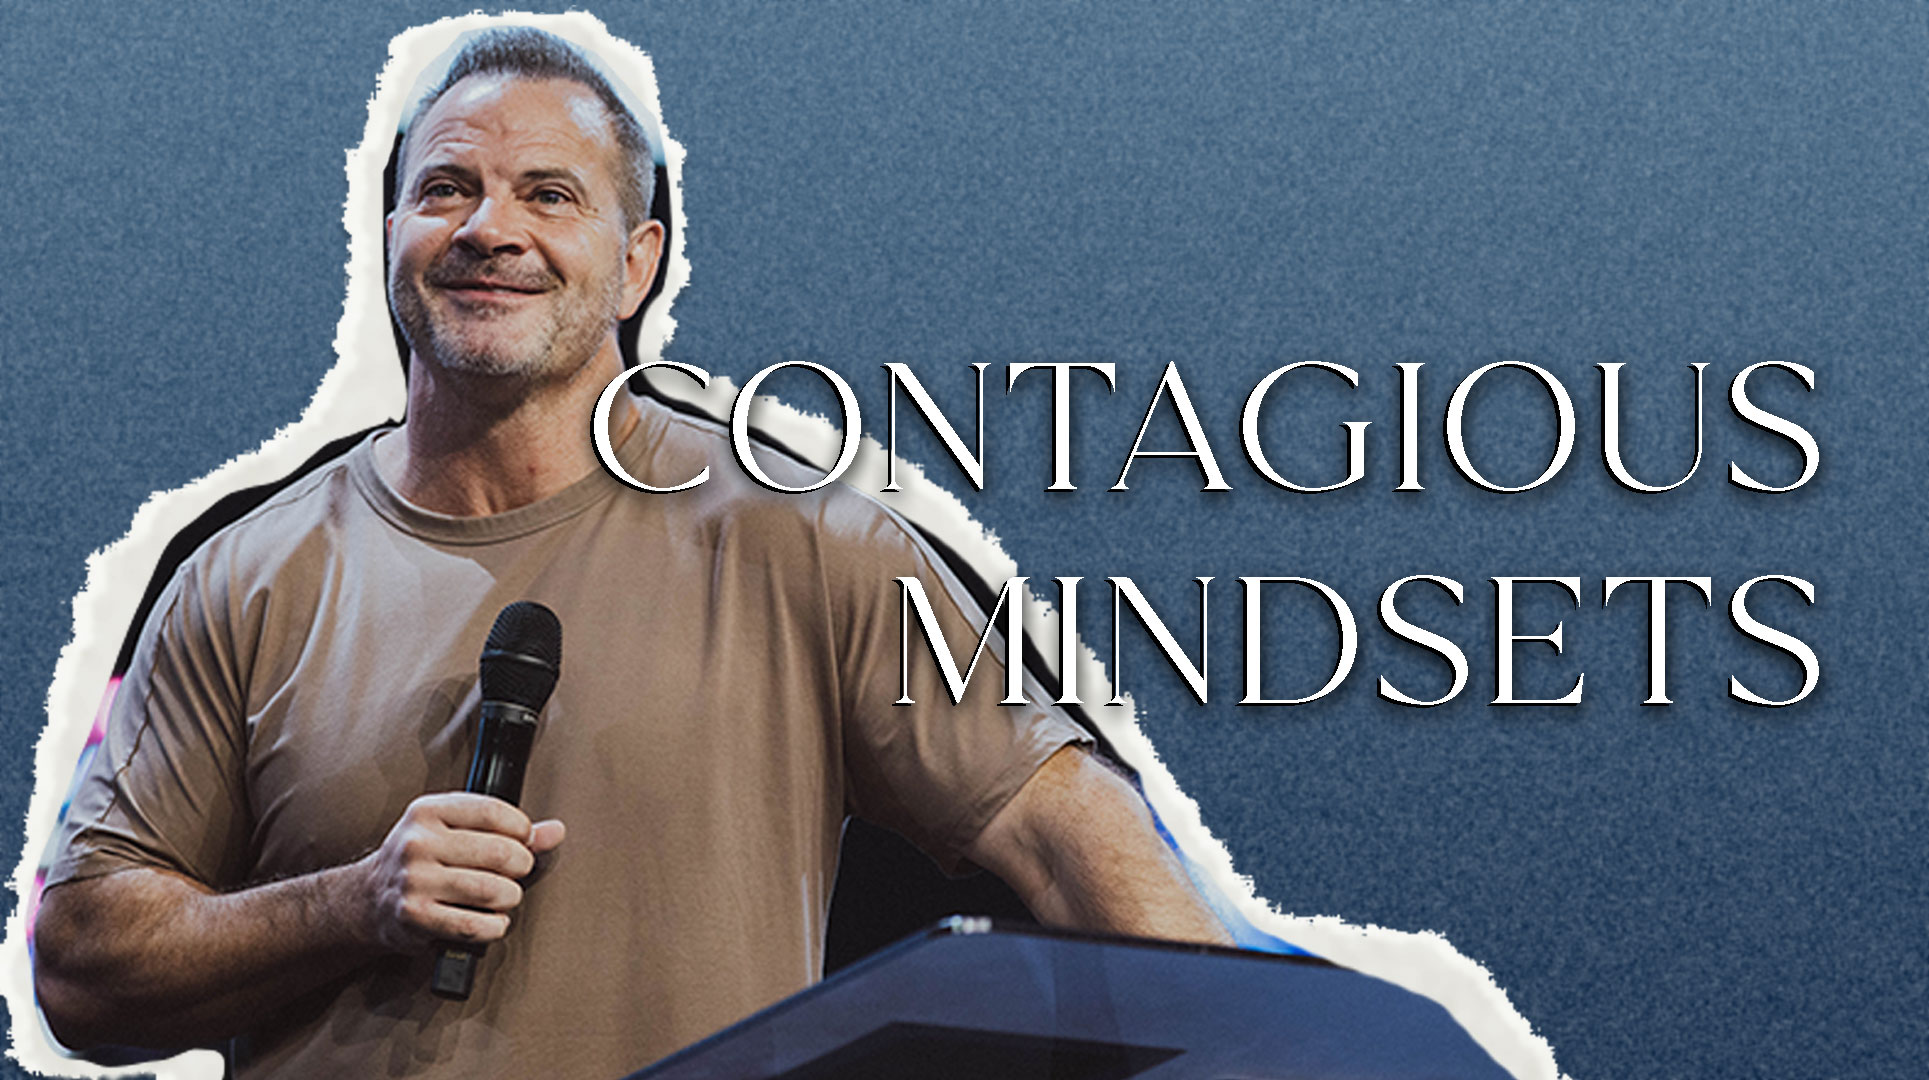 Contagious Mindsets